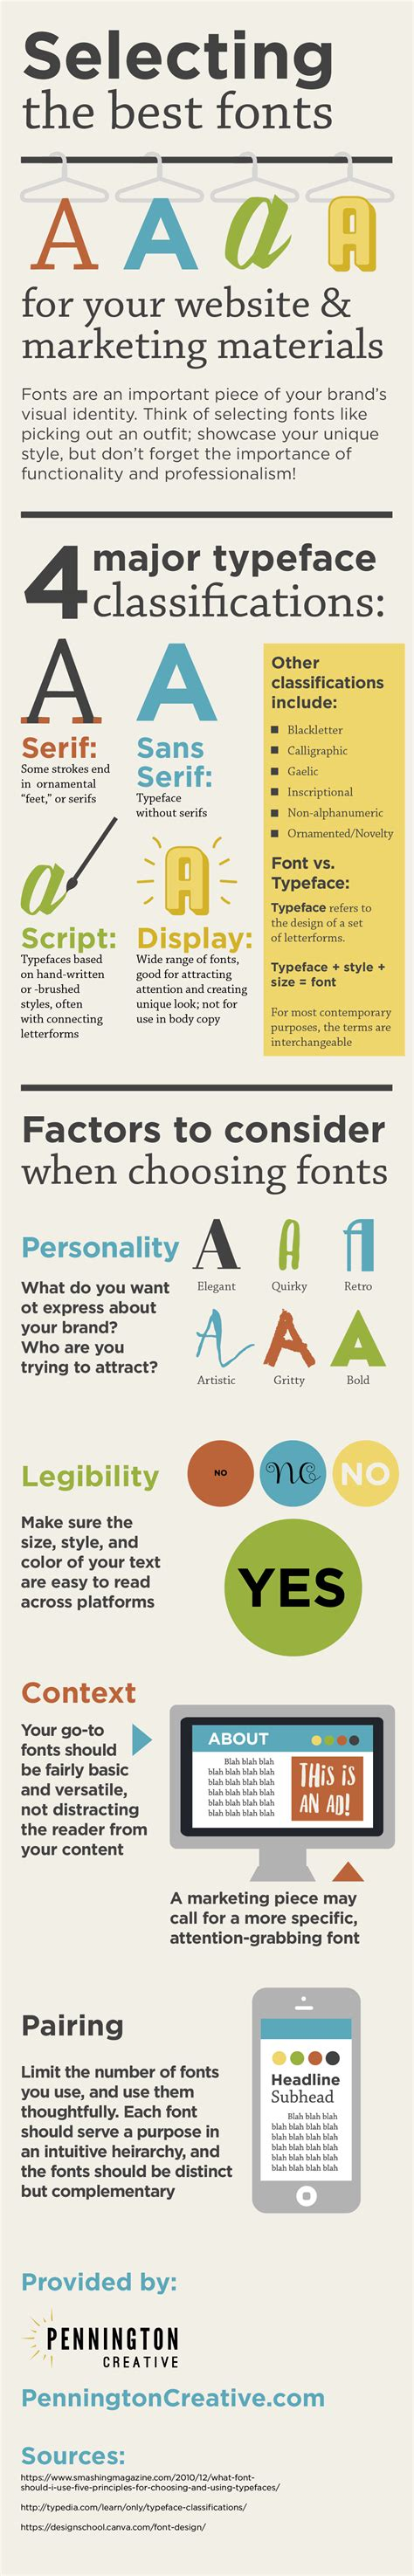 Selecting The Best Fonts For Your Website And Marketing